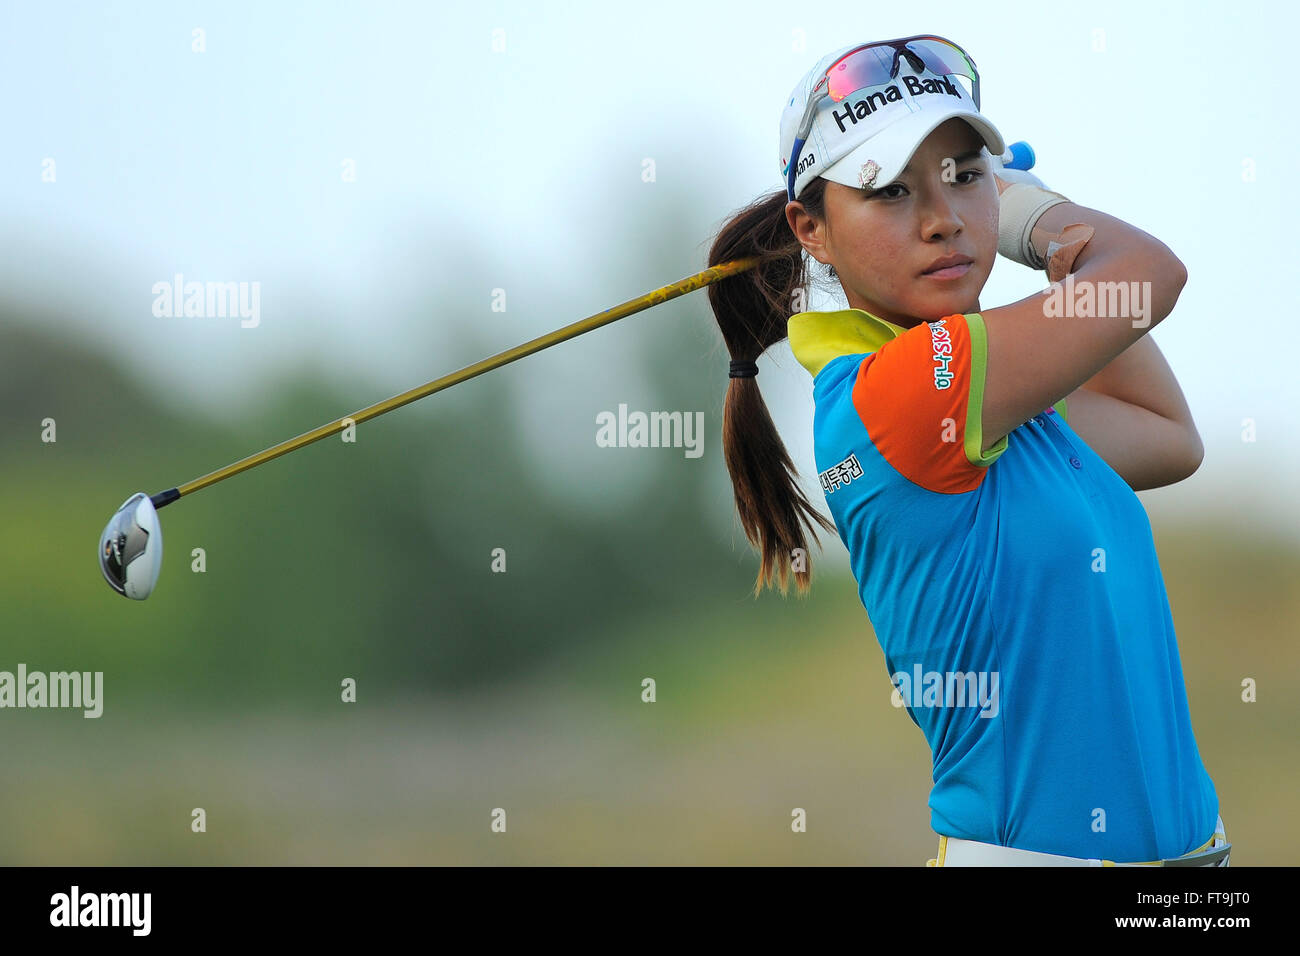 Kohler, Wis, USA. 5th July, 2012. Hee Young Park during the first ...